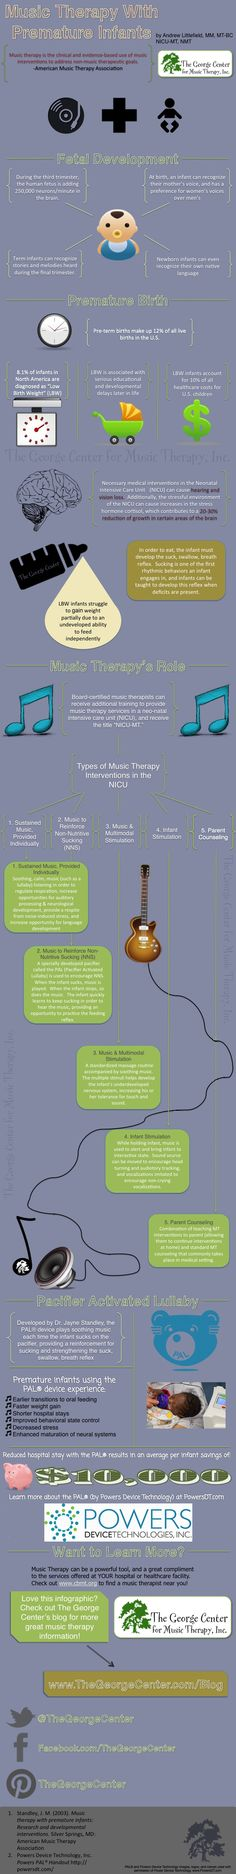 Infographic illustrating the value and use of music therapy in the NICU with premature infants - a valuable and powerful tool for these young patients. Movement Activities, Therapy Activities, Therapy Ideas, Education College, Music Education, Creative Arts Therapy, Child Life Specialist, Premature Baby, Music Heals